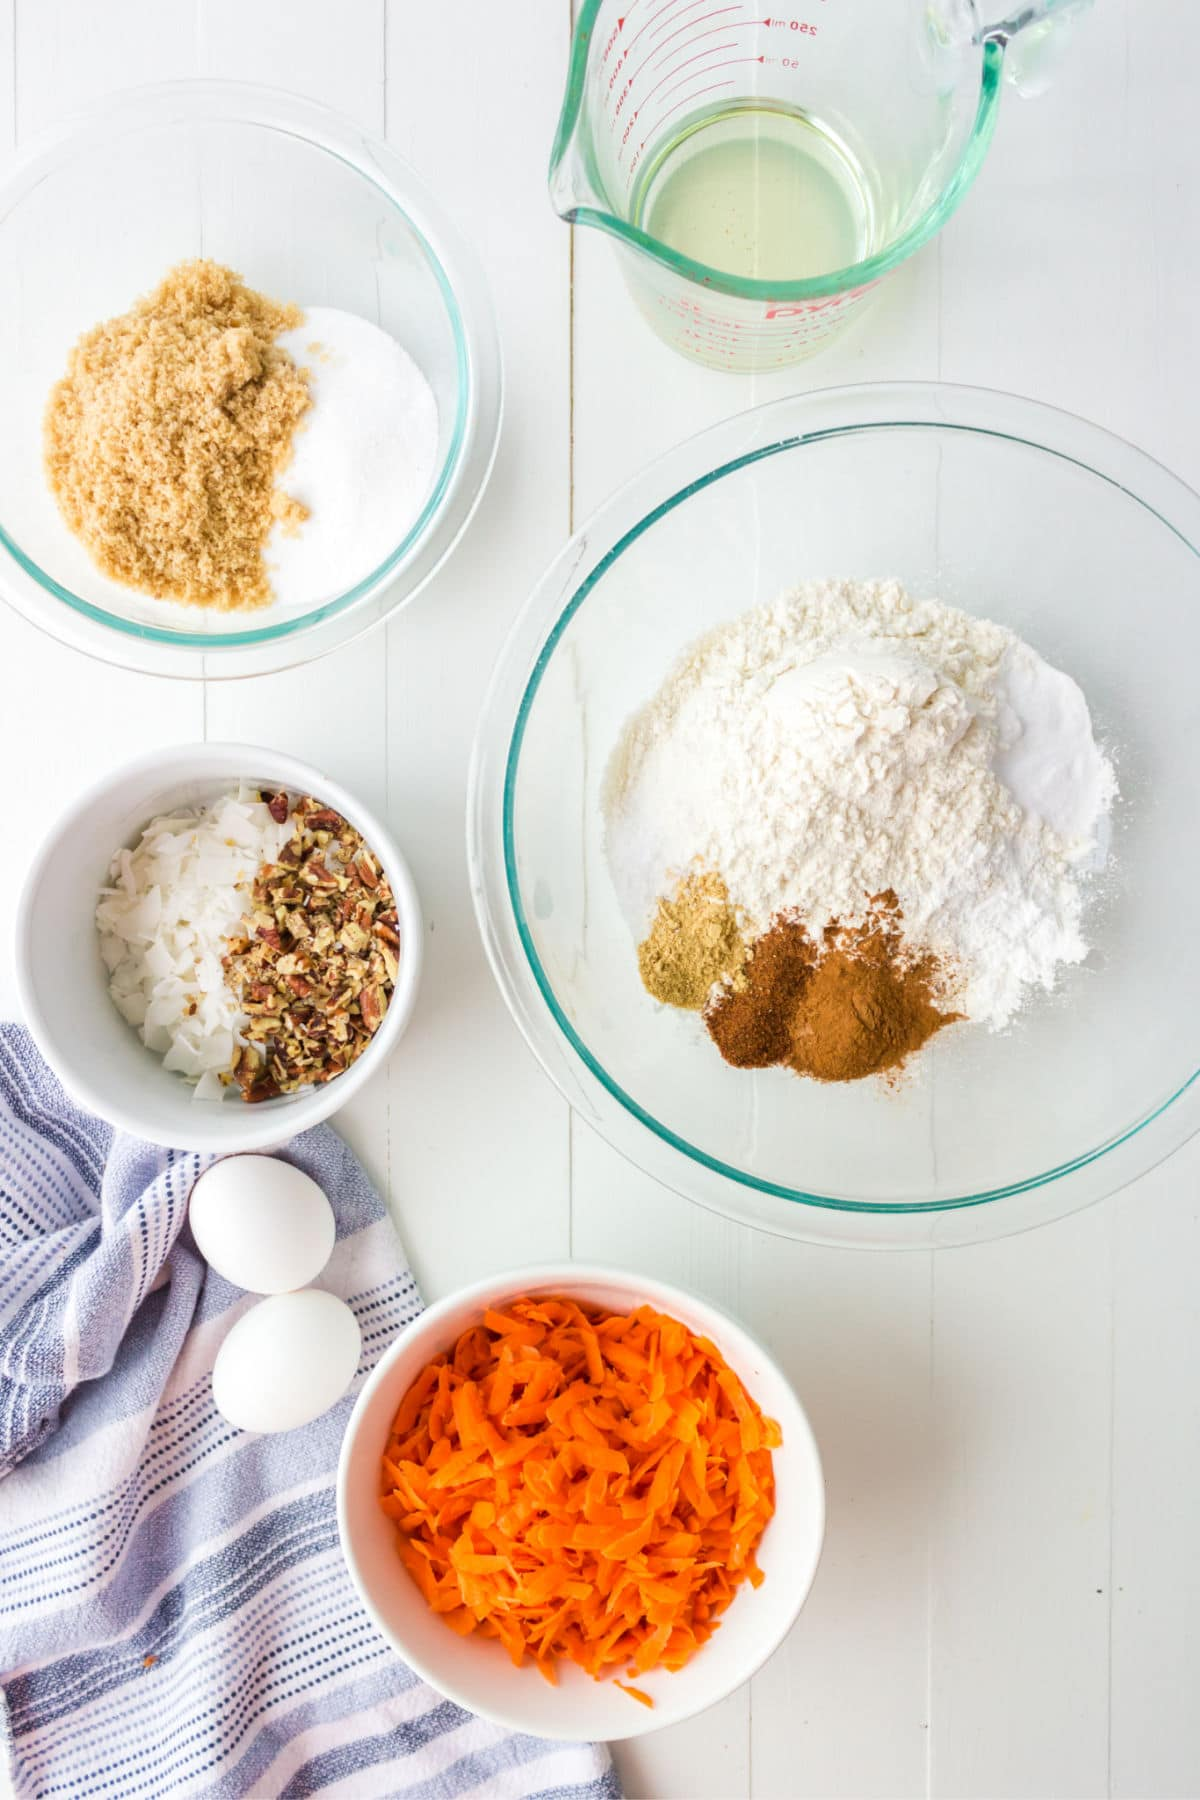 Carrot cake cookie ingredients in glass bowls.